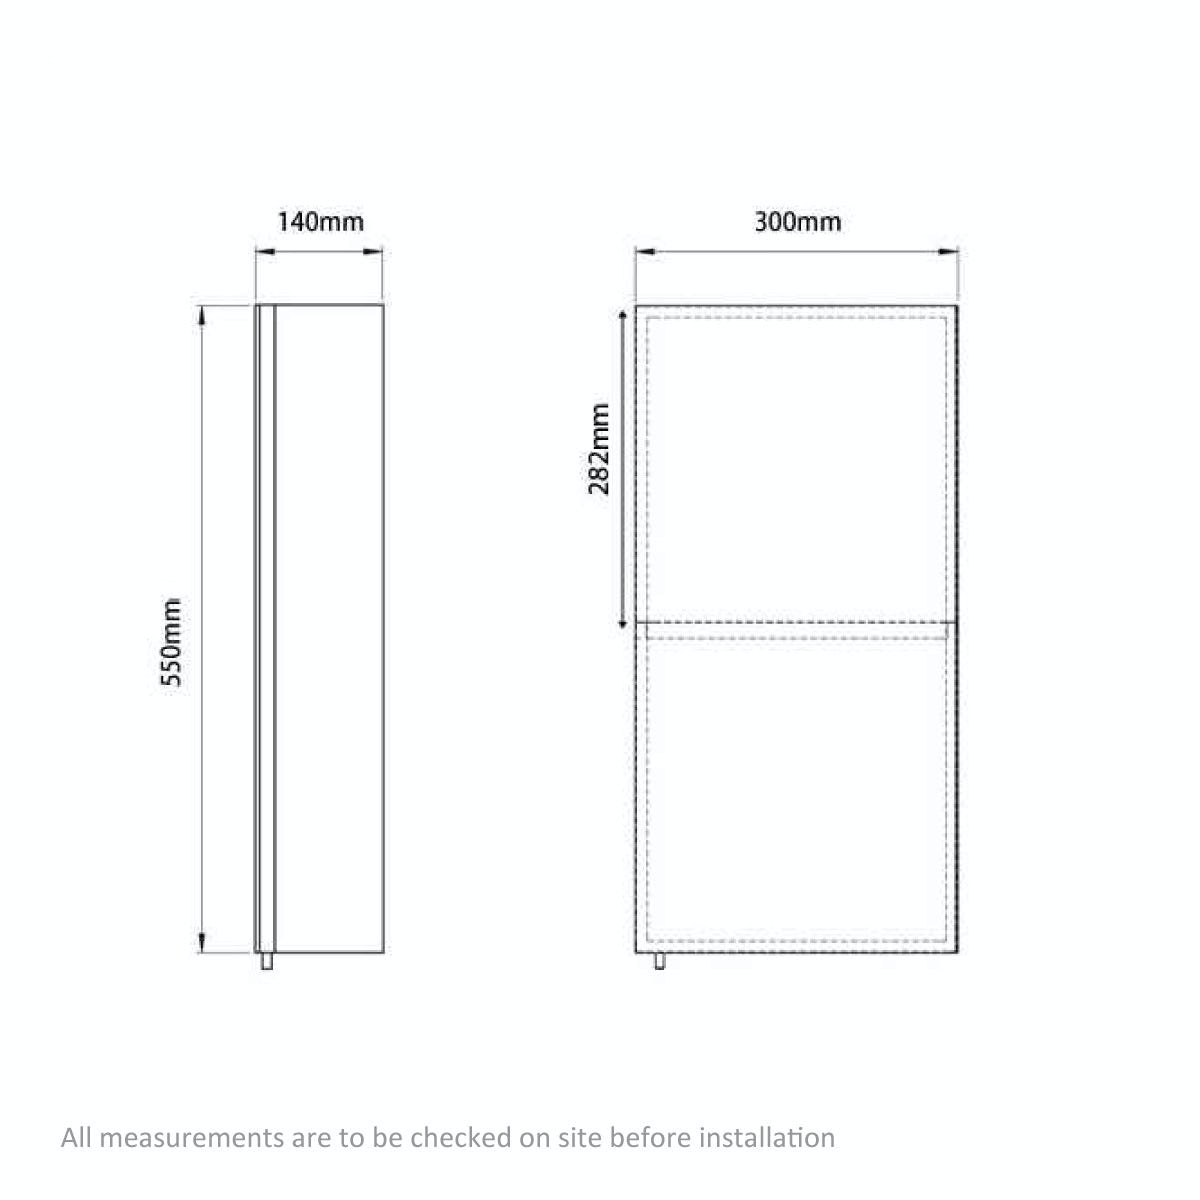 Dimensions for Orchard Reflex stainless steel bathroom cabinet 550 x 300